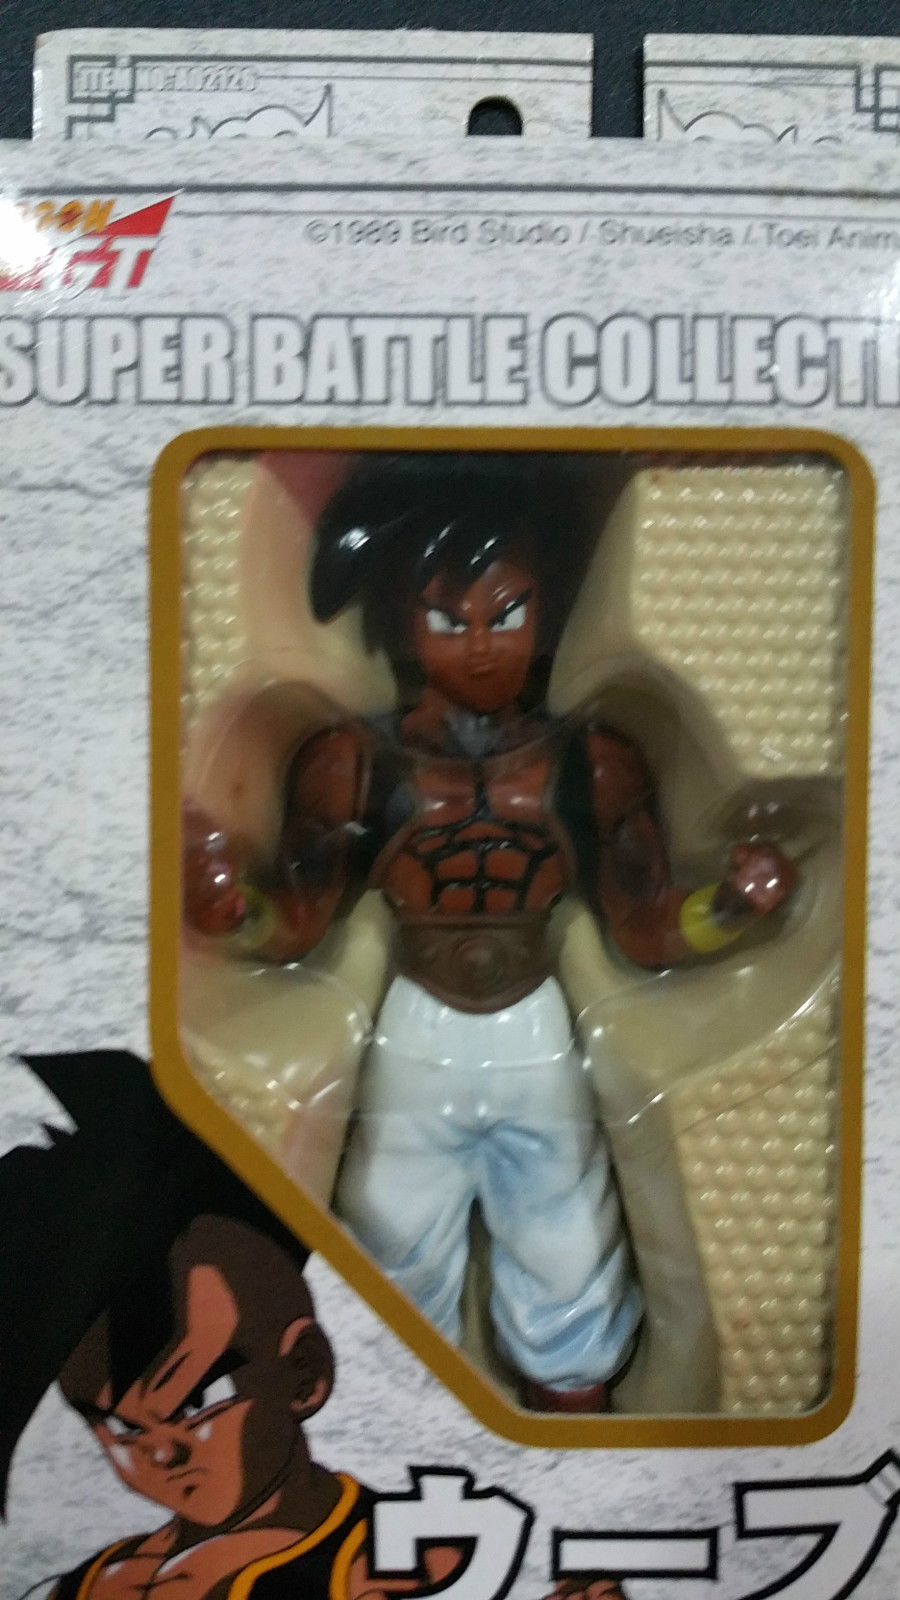 Super Battle Collection – Oob (2003 Re-Release)